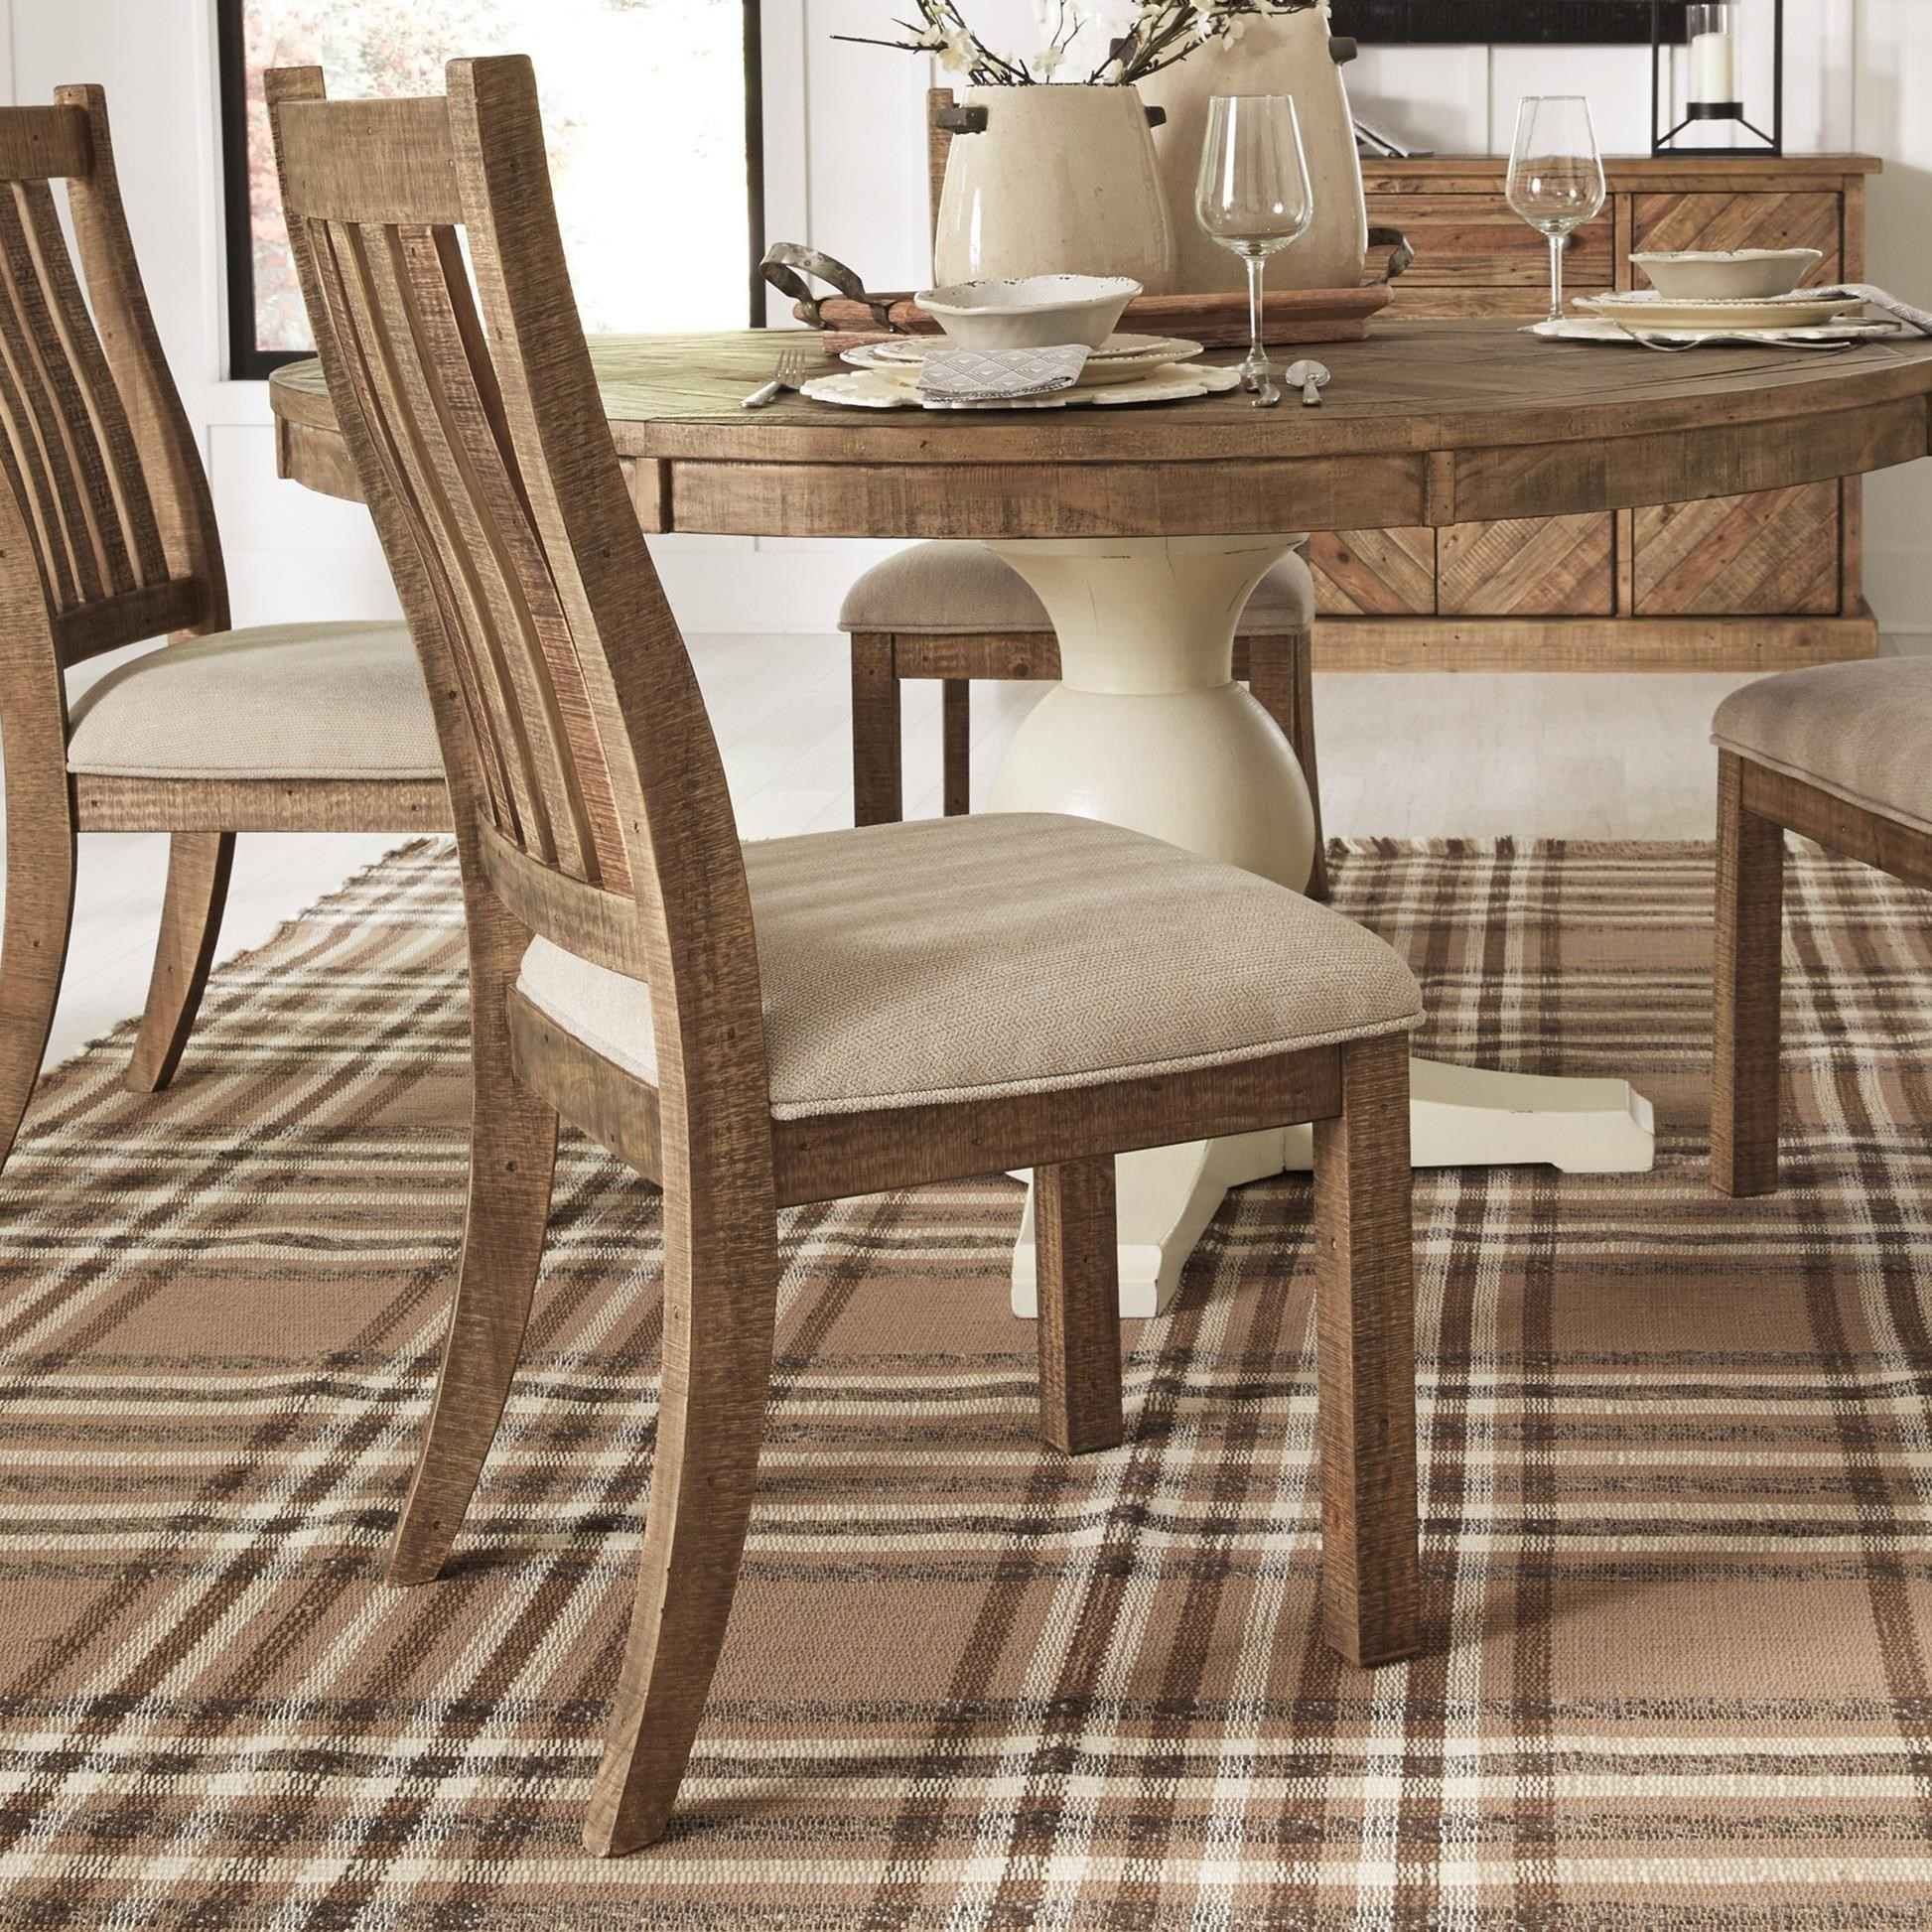 Grindleburg Dining Room Table Round: Signature Design By Ashley Grindleburg Dining Upholstered